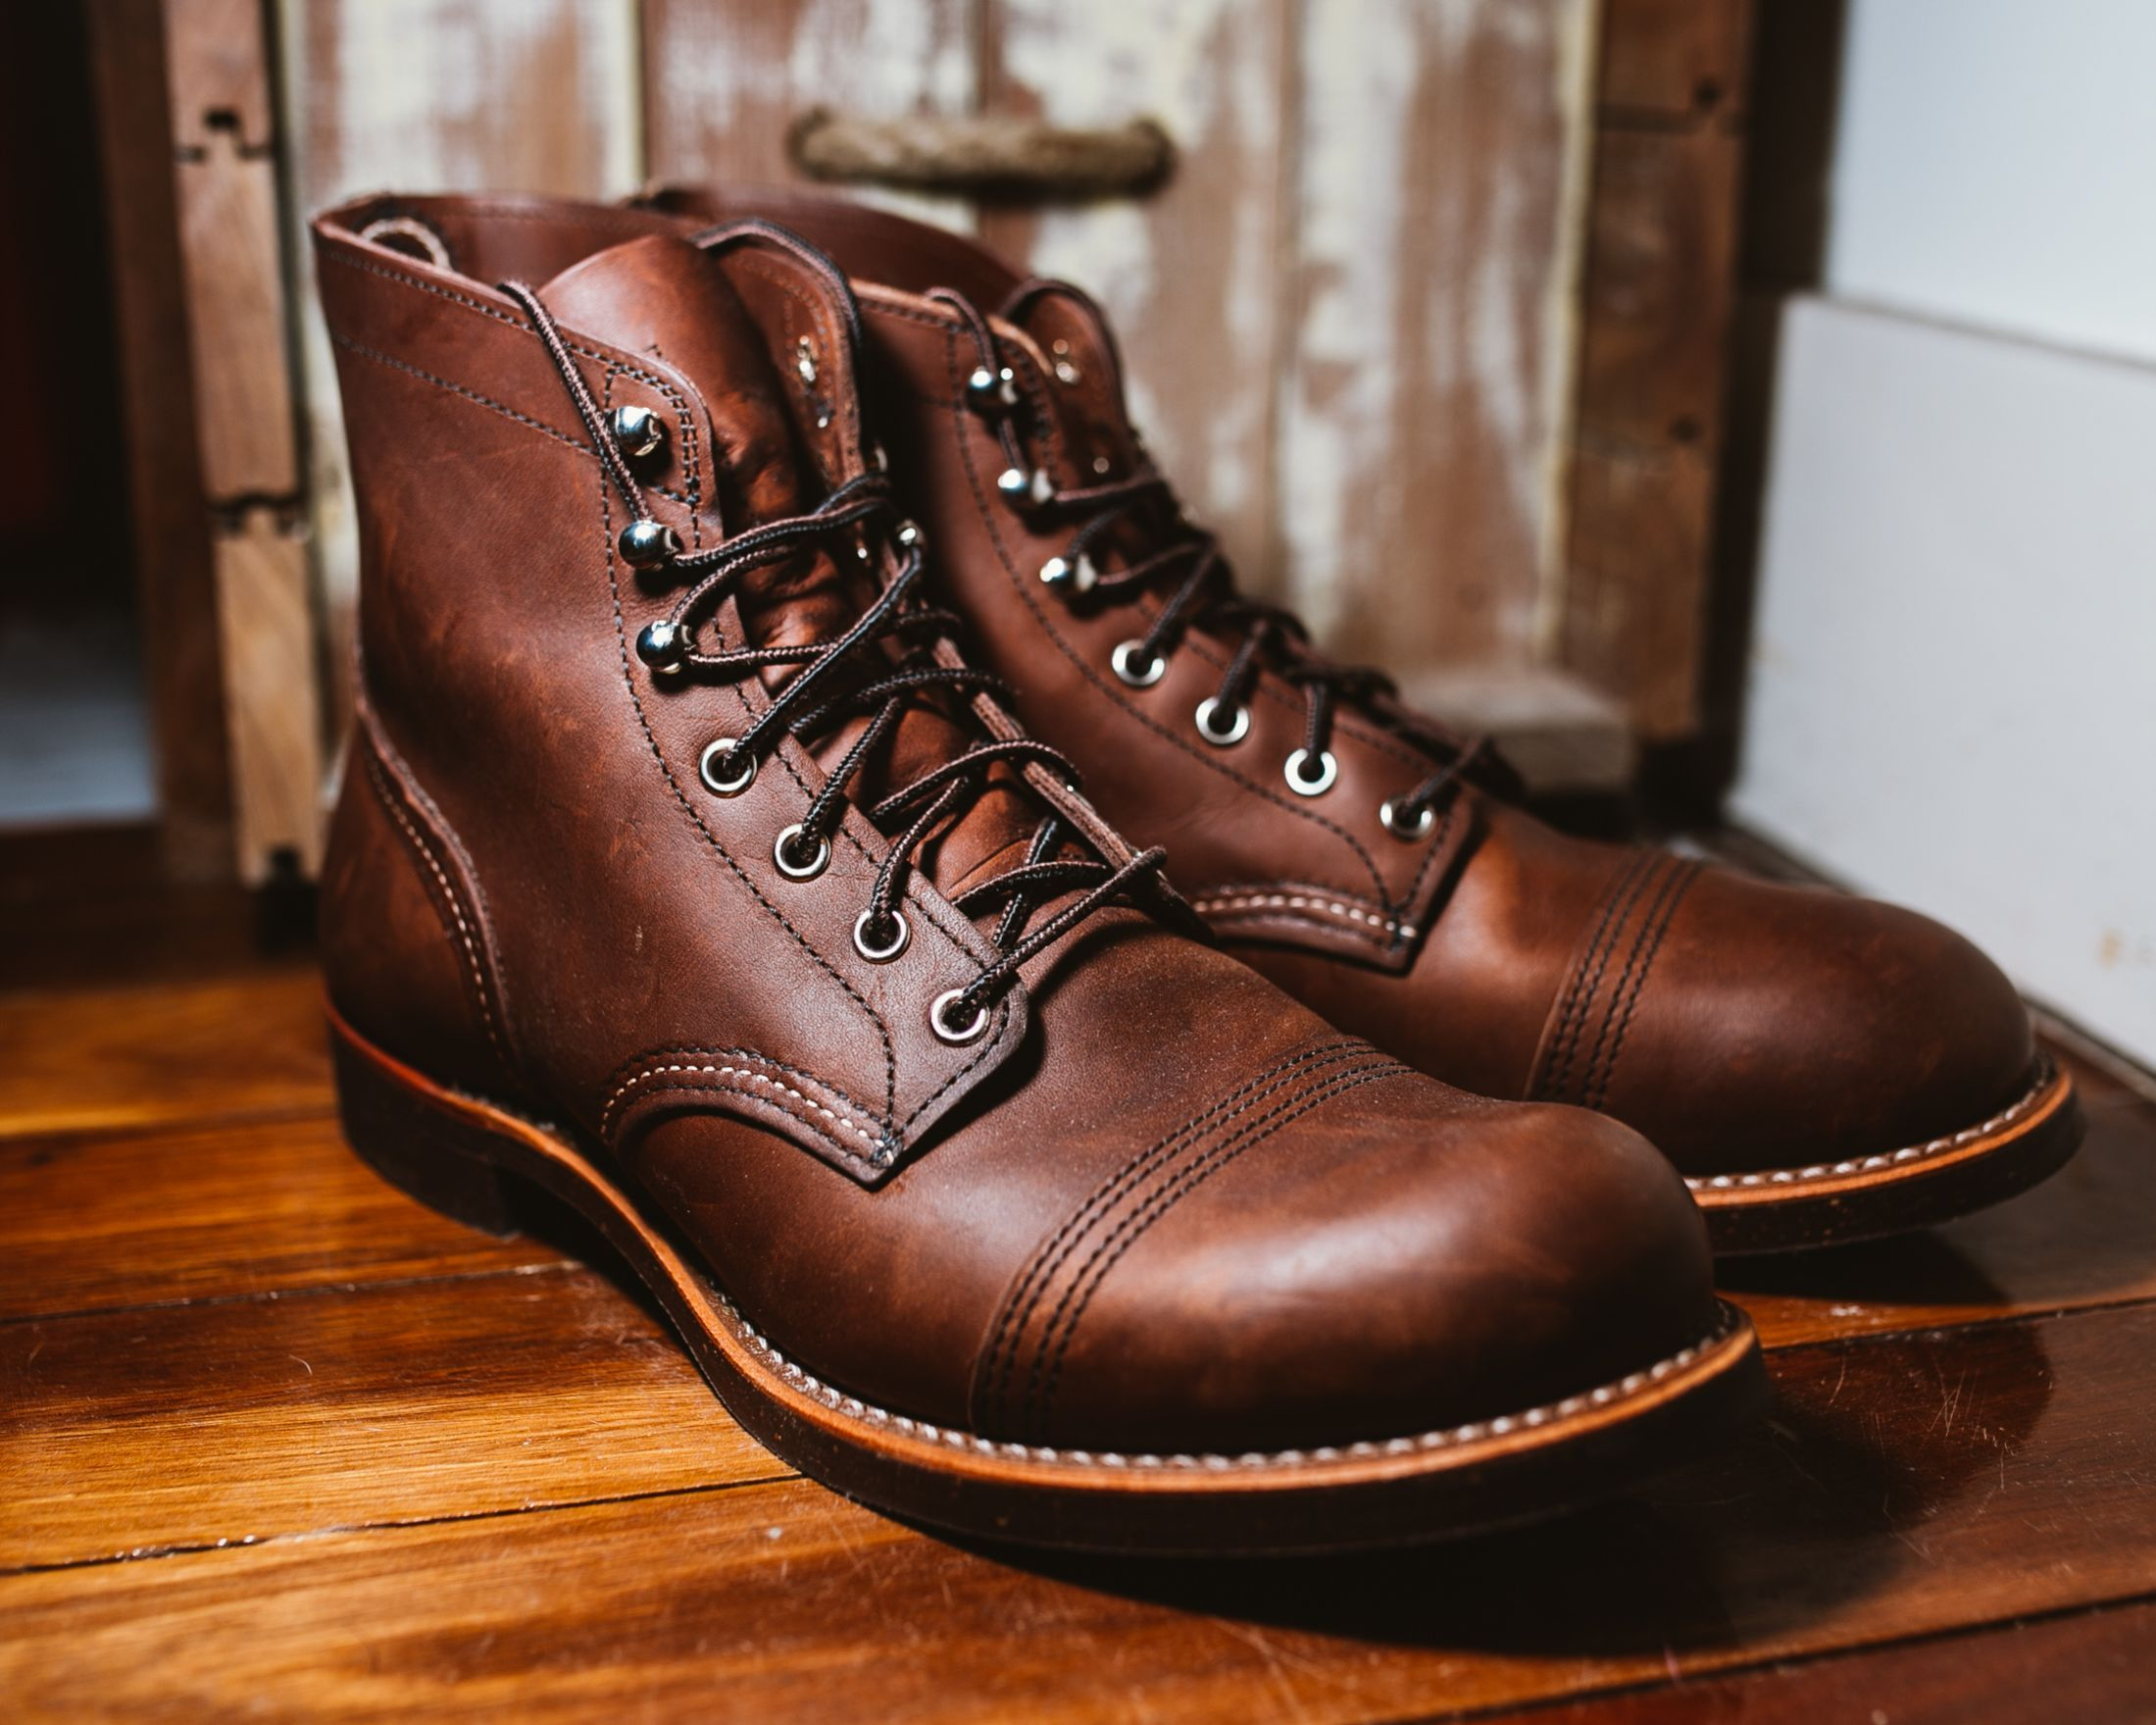 4a7ad6257a0 Iron Ranger in 2019 | Stuff | Red wing boots, Boots, Casual boots